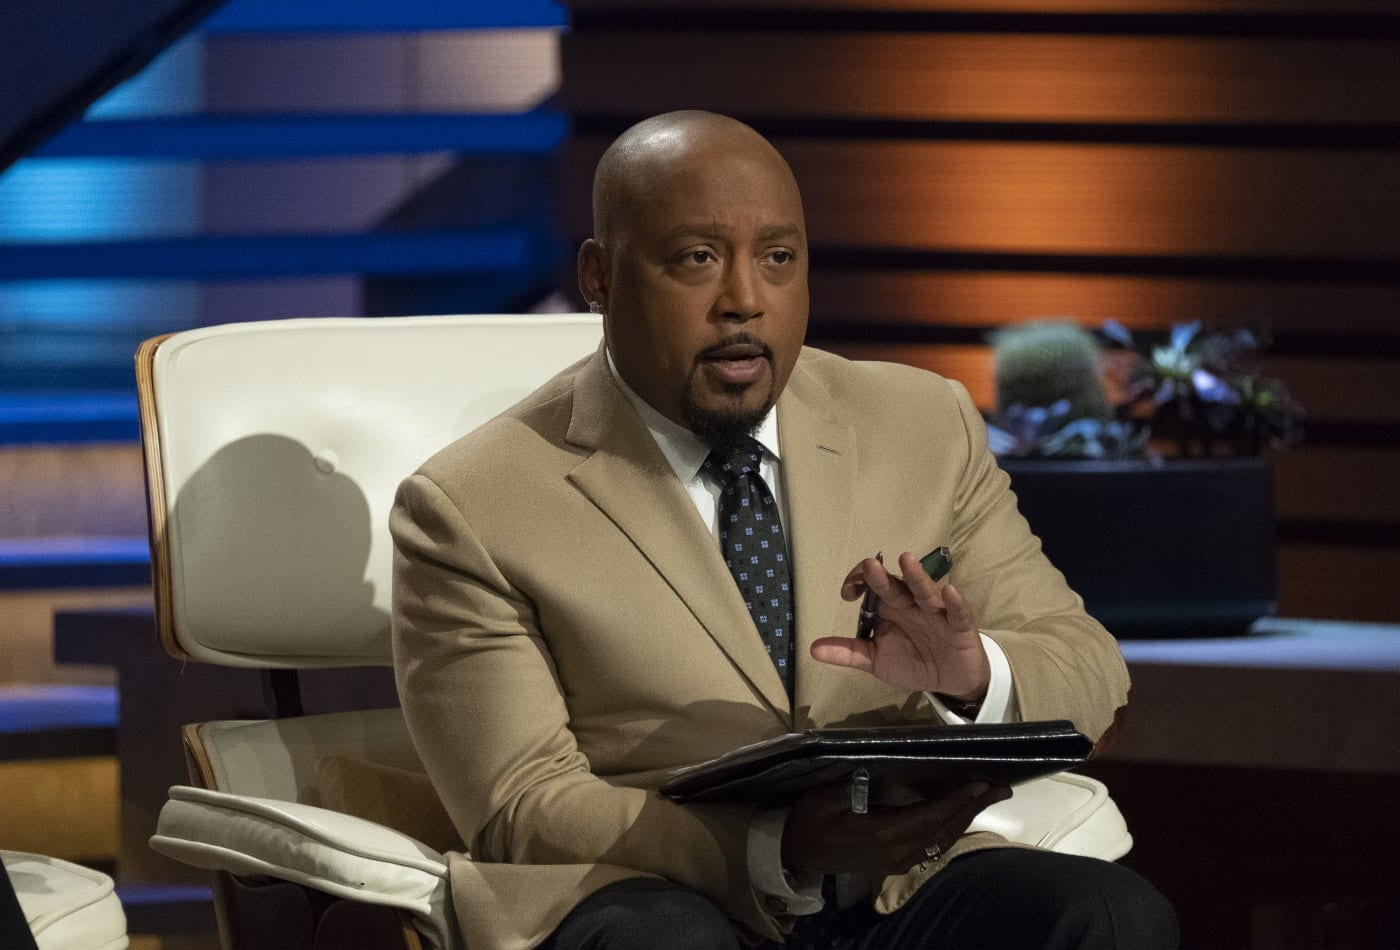 Daymond John to pick Black entrepreneurs for $25,000 grants: 'We need to be building businesses, not burning them'